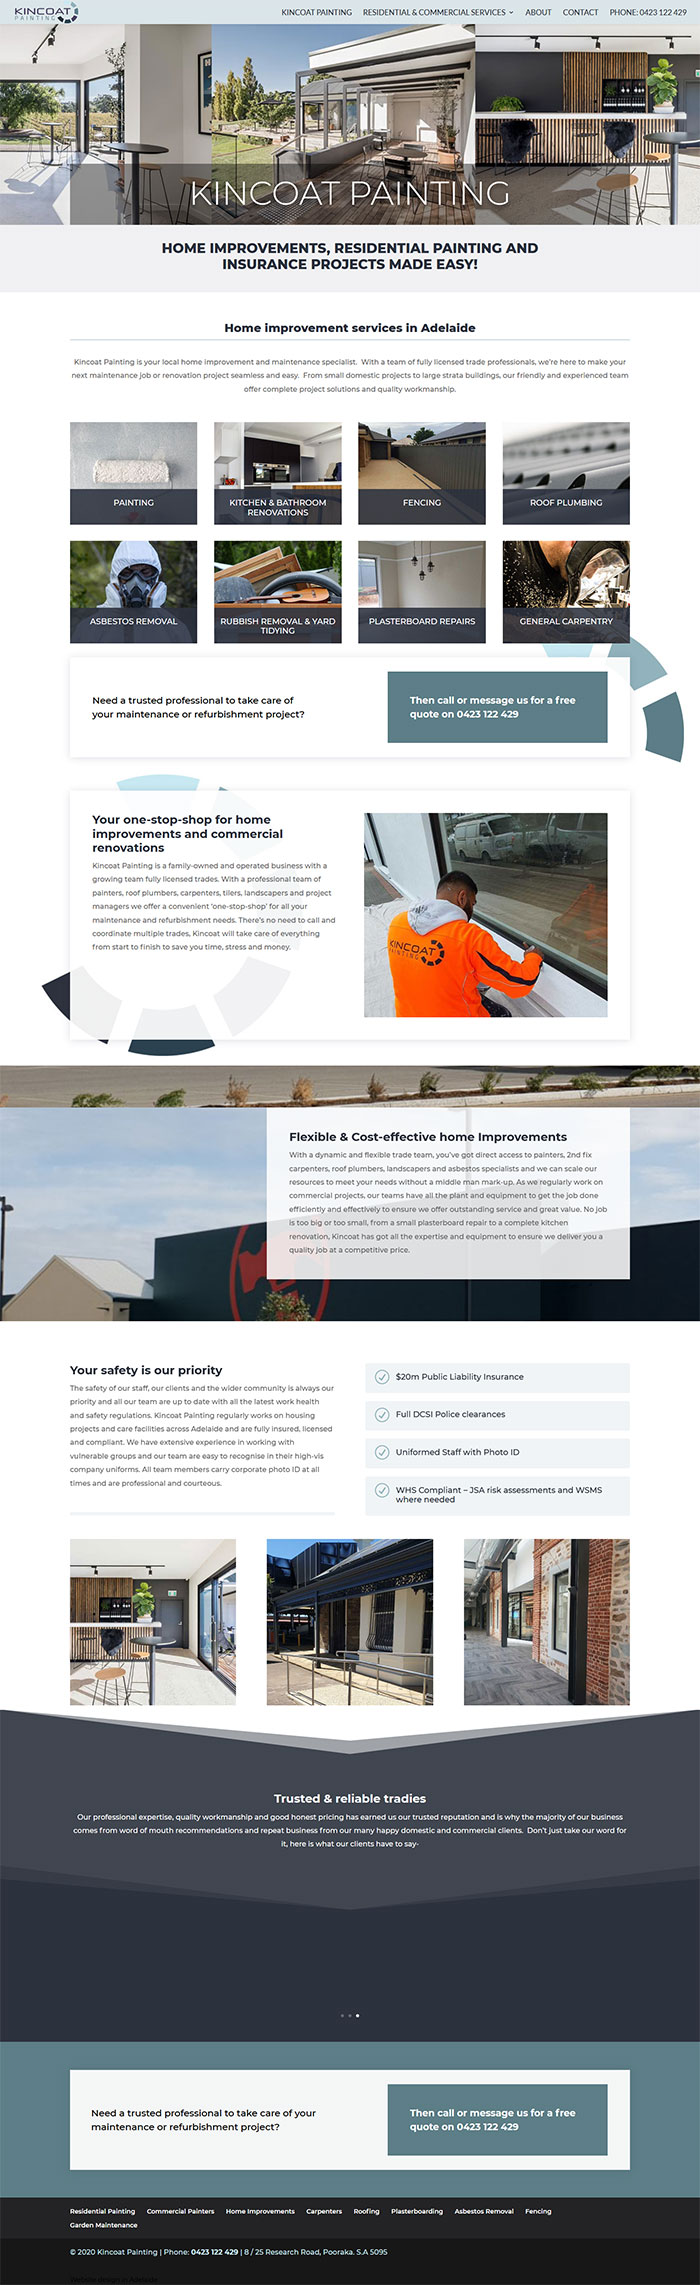 website design example painting business adelaide